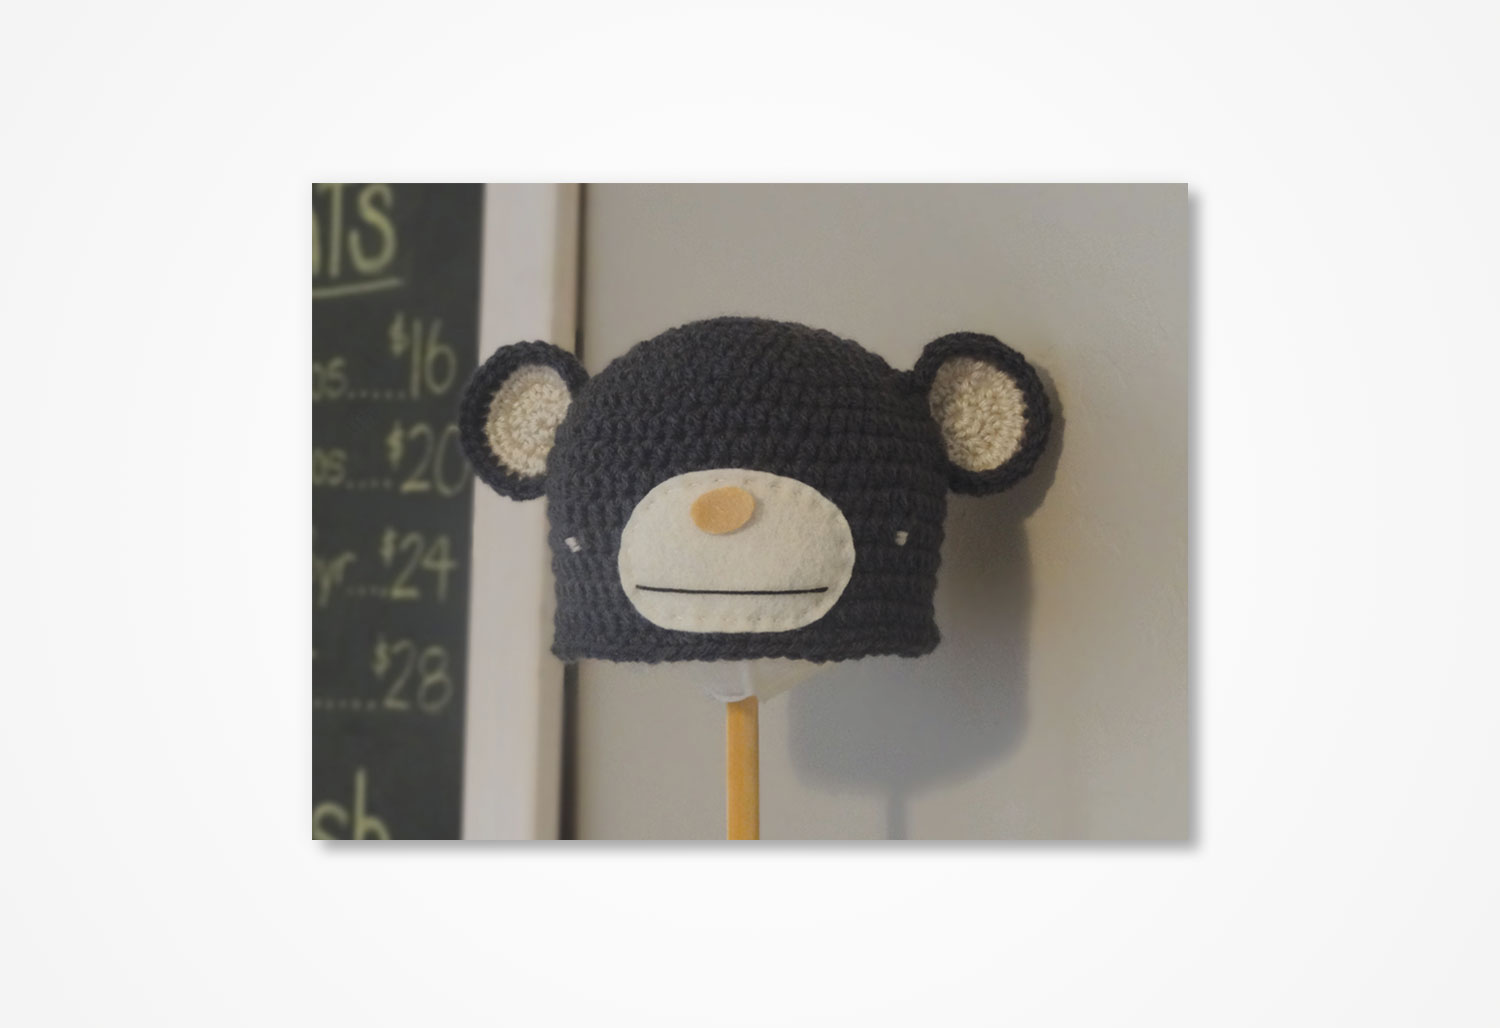 lurly-crochet-bear-hat.jpg